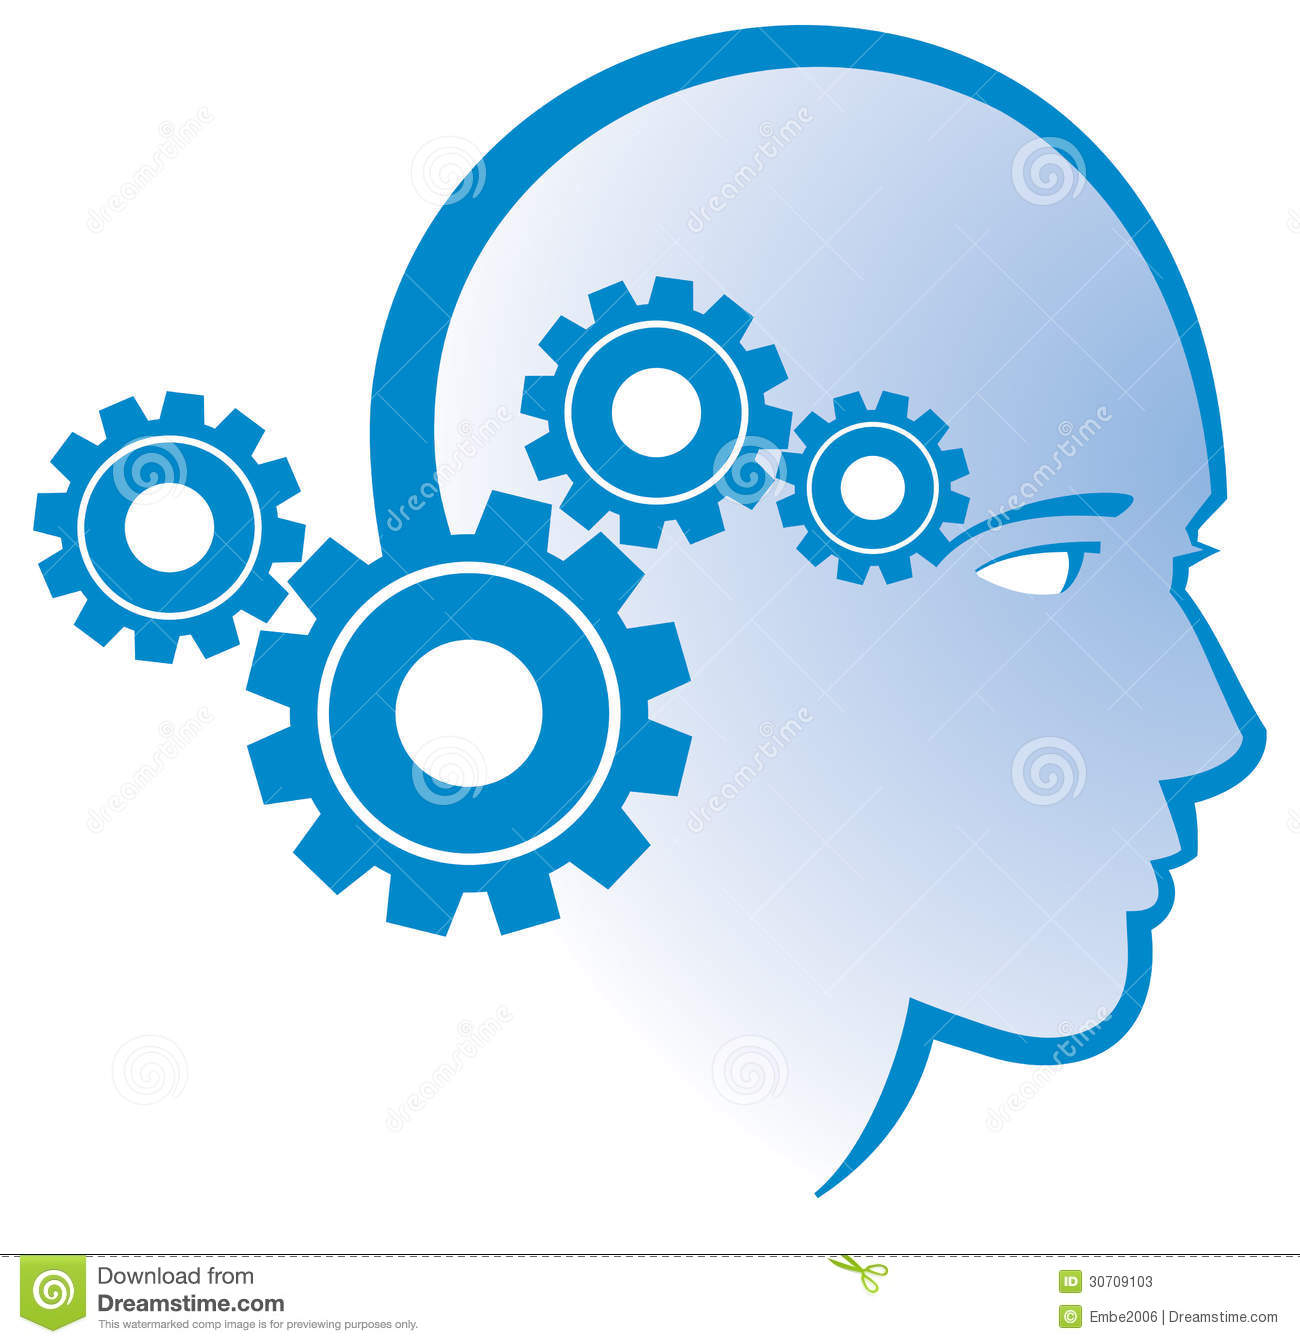 logo icon of a gear mind head thinking person.